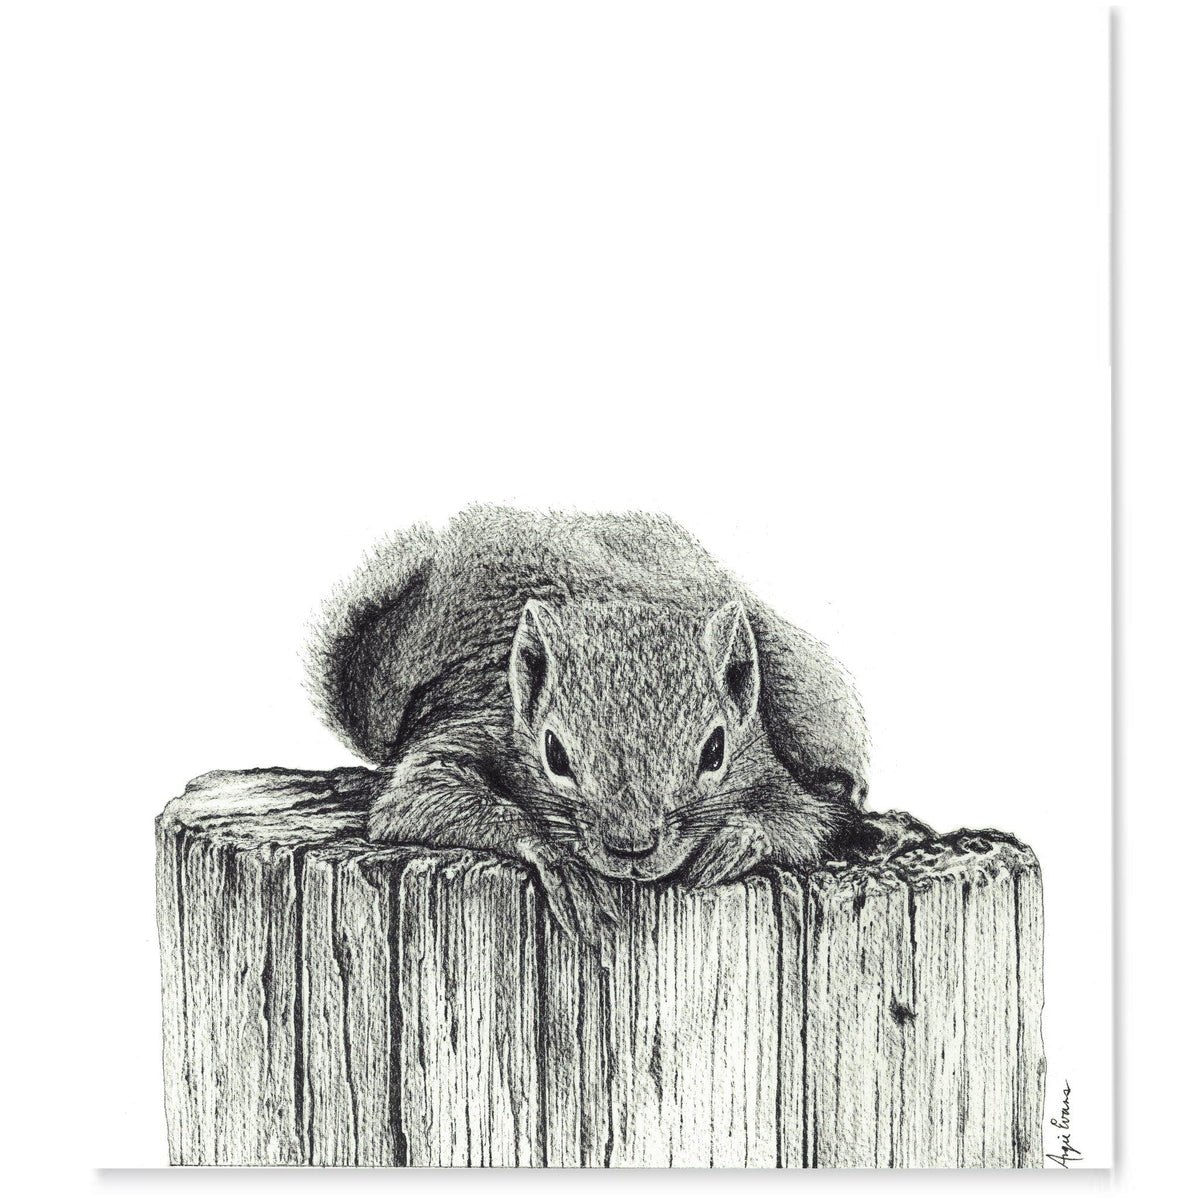 A squirrel lounging on top of a stump, black and white pen drawing.